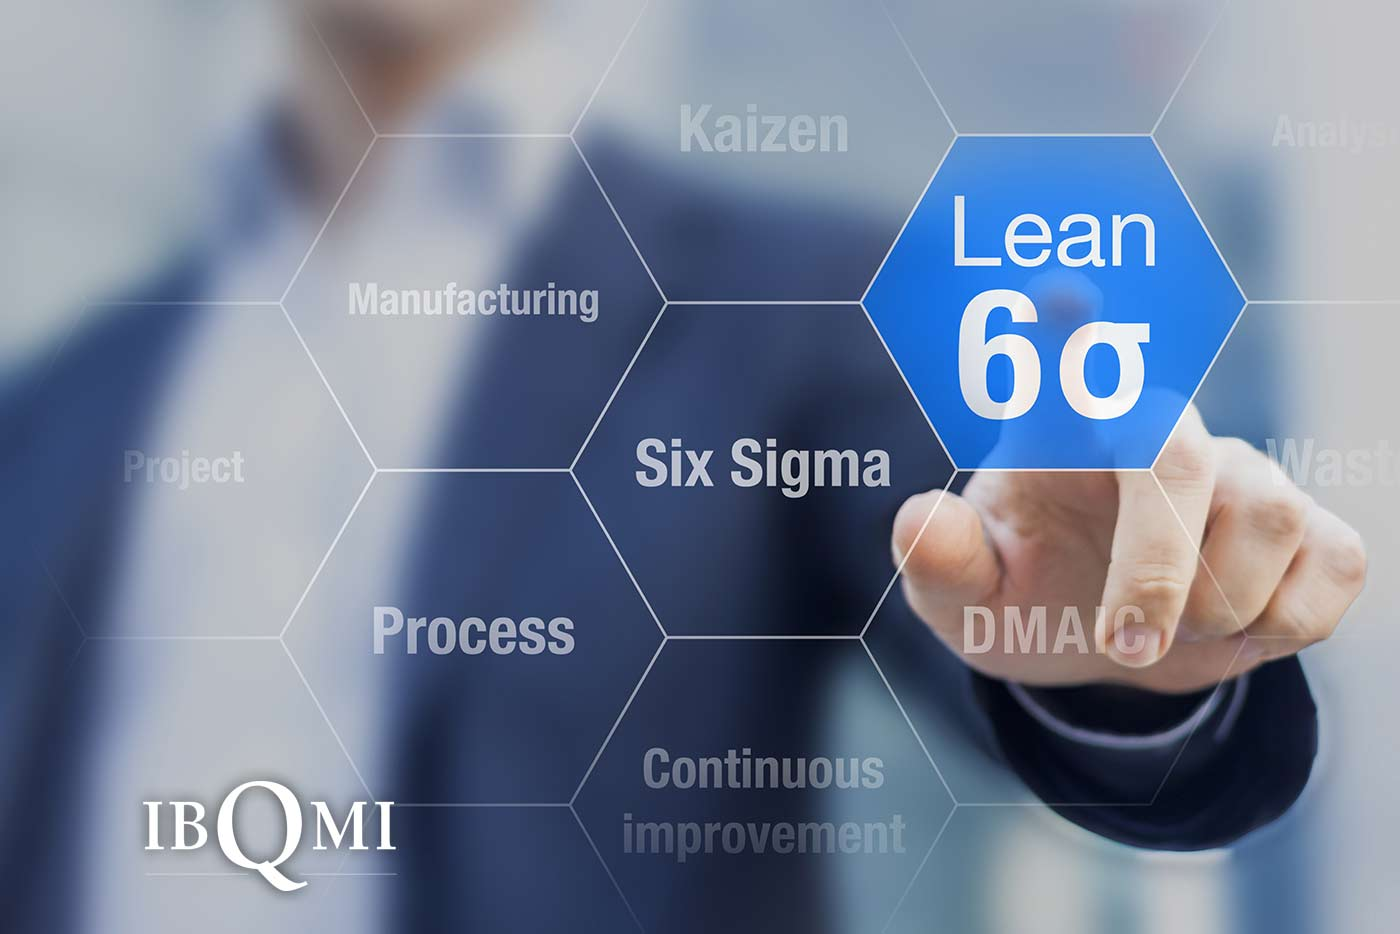 The advantages of using ibqmi tqm and six sigma